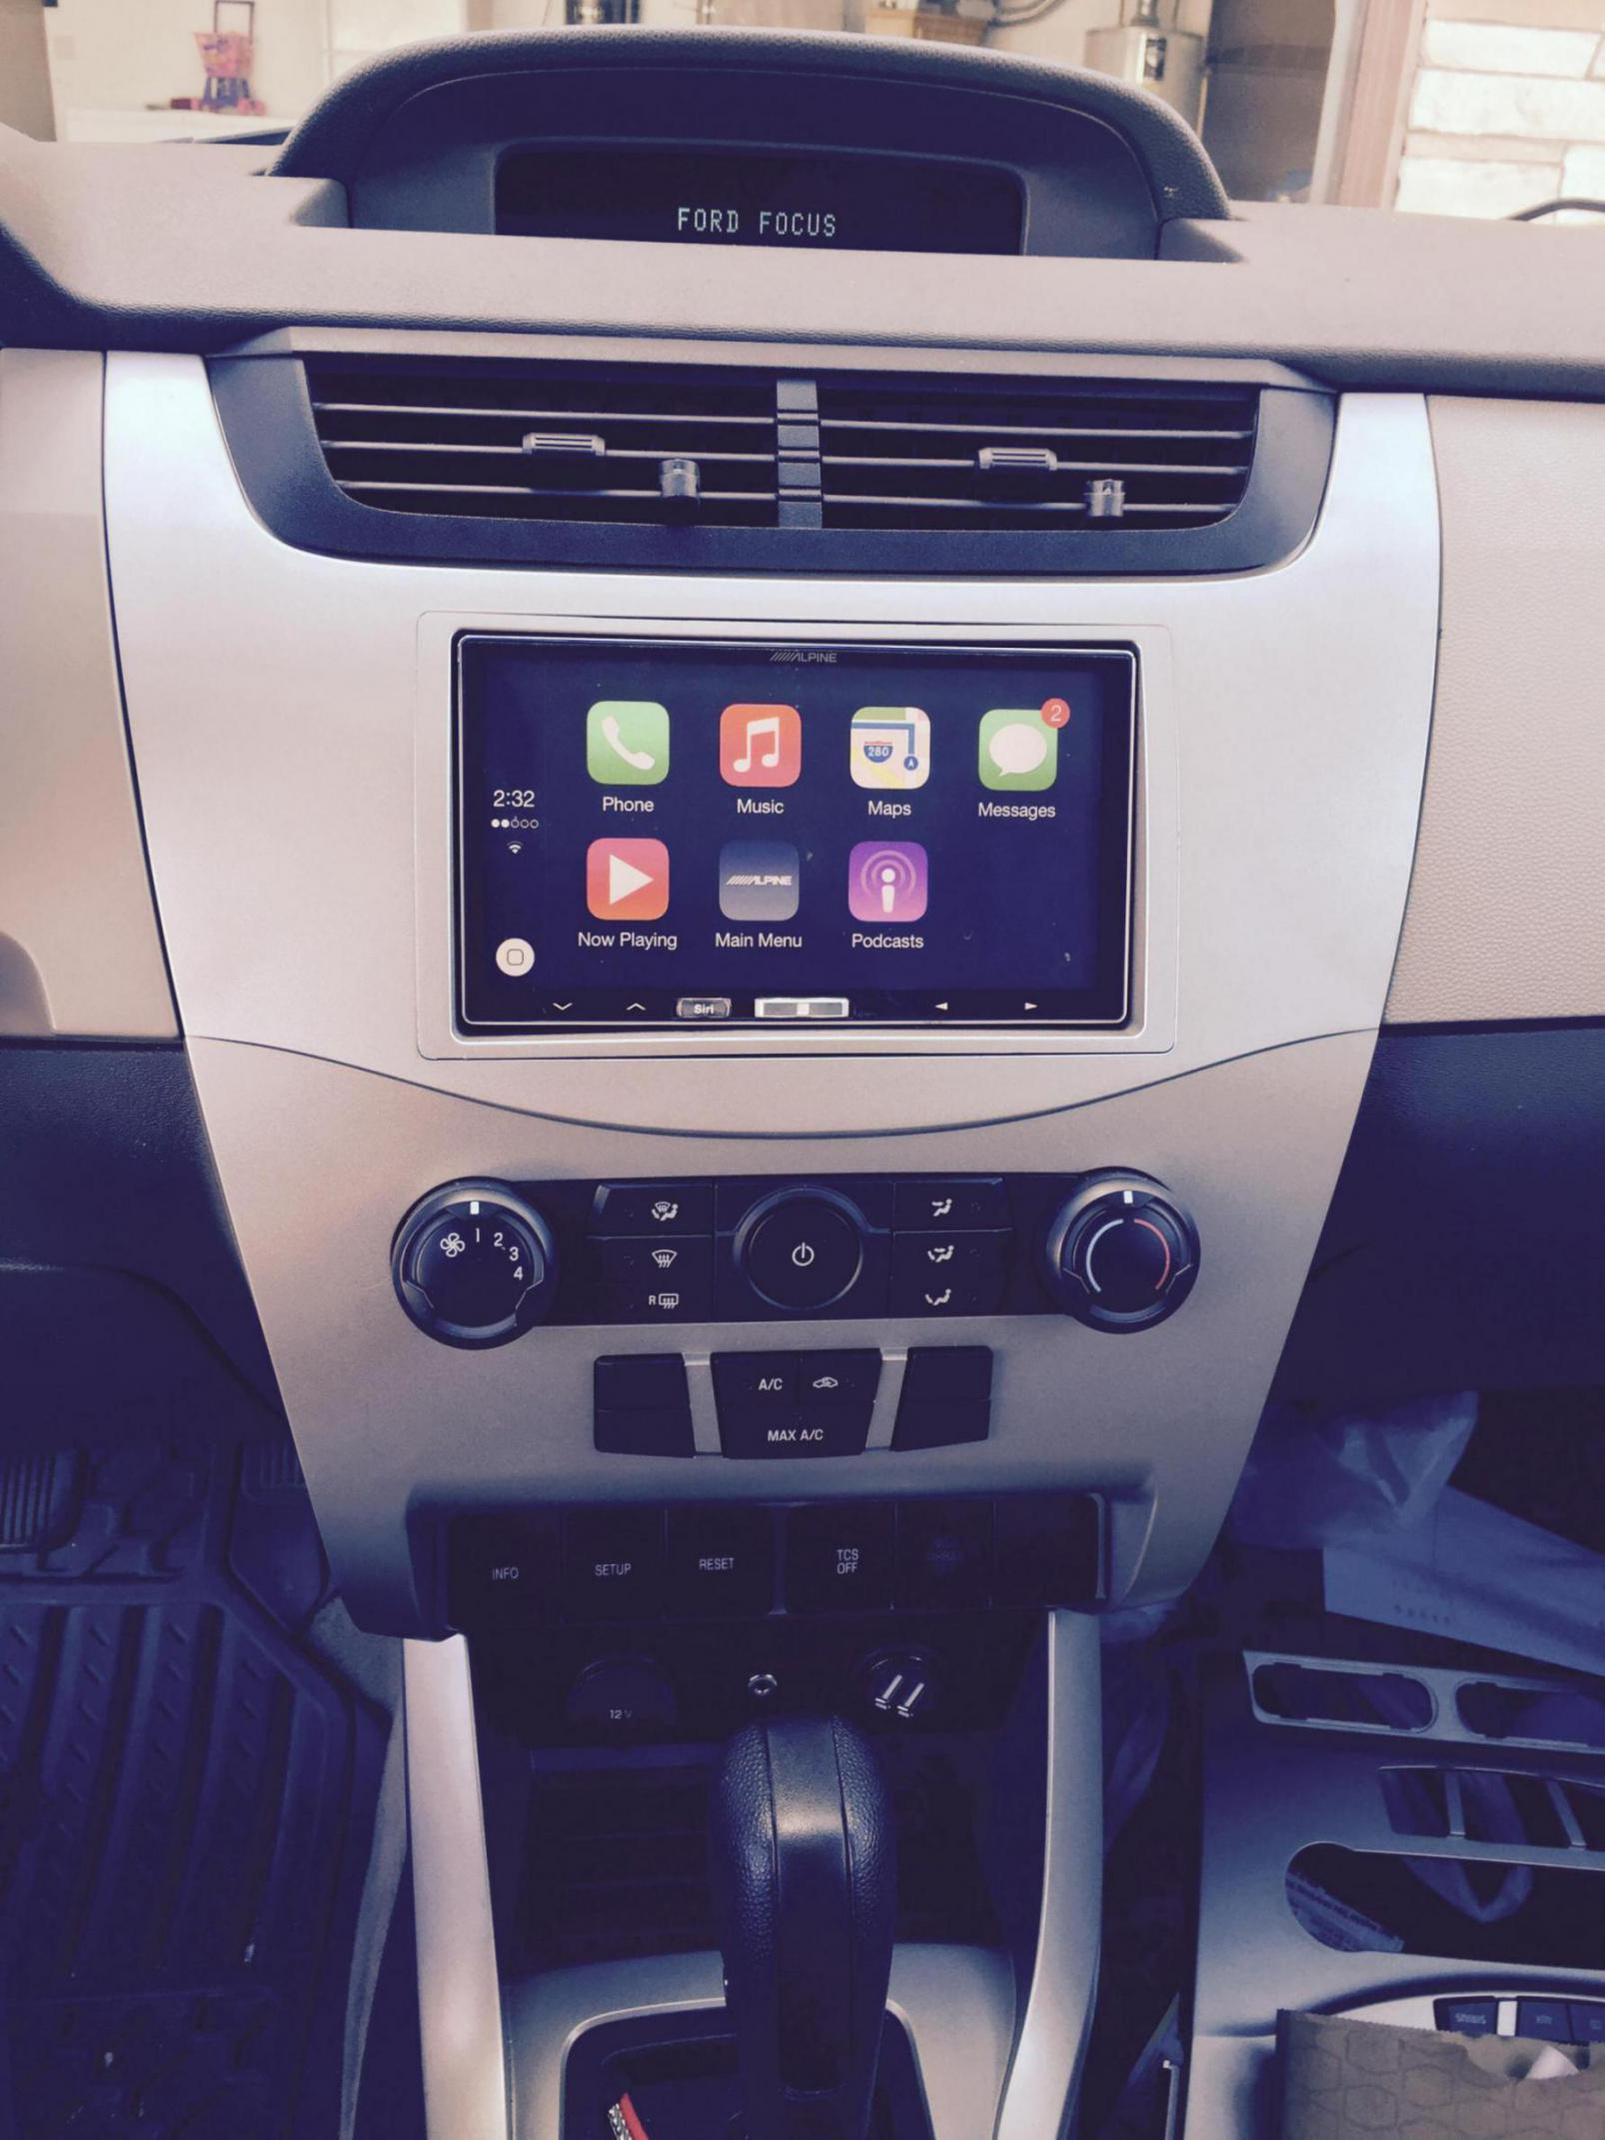 Ford Focus 2007 Stereo